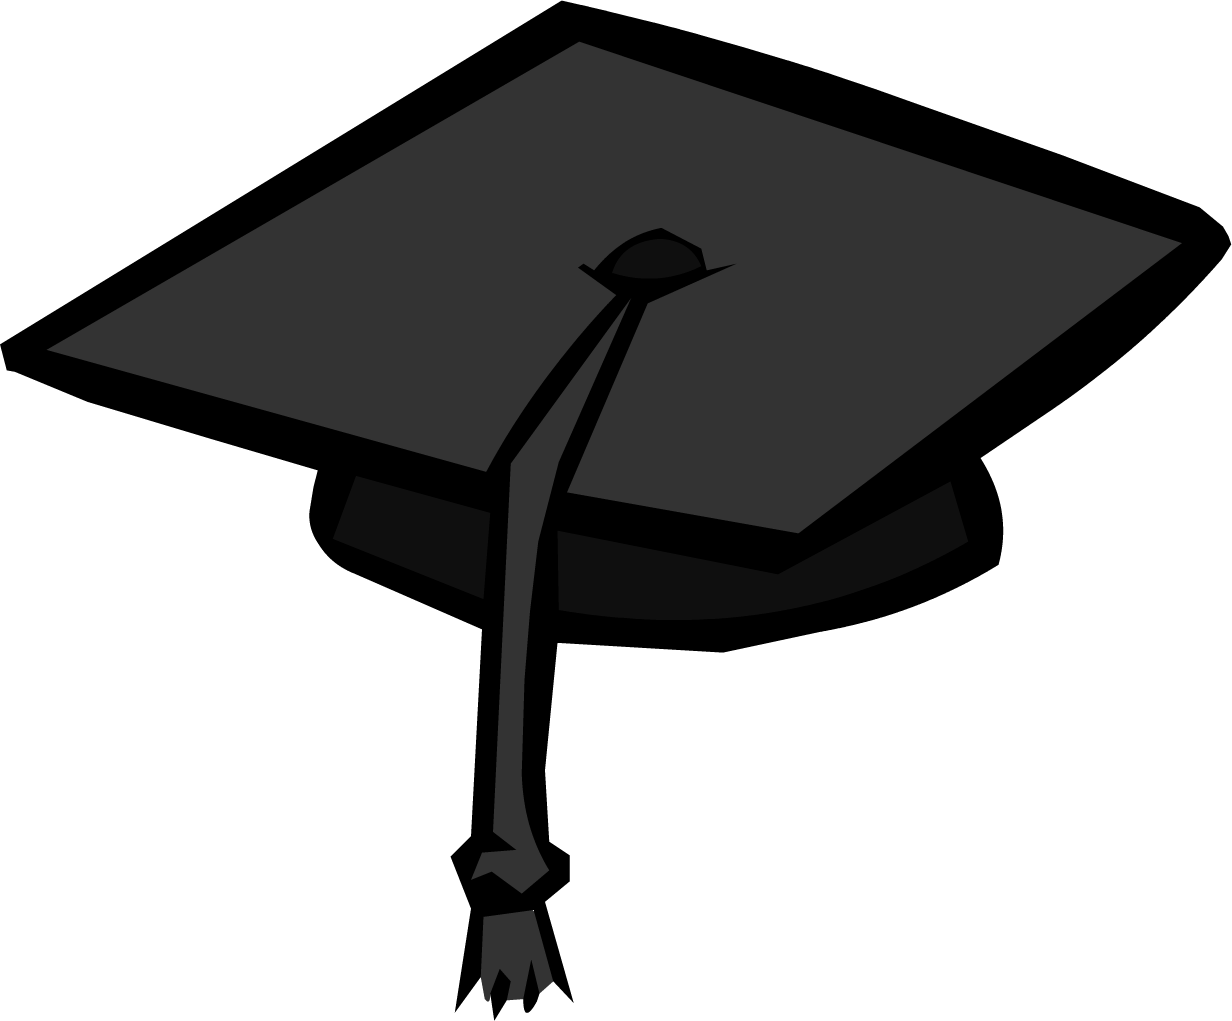 graduation cap transparent   Free cliparts that you can download to    Diploma Transparent Background